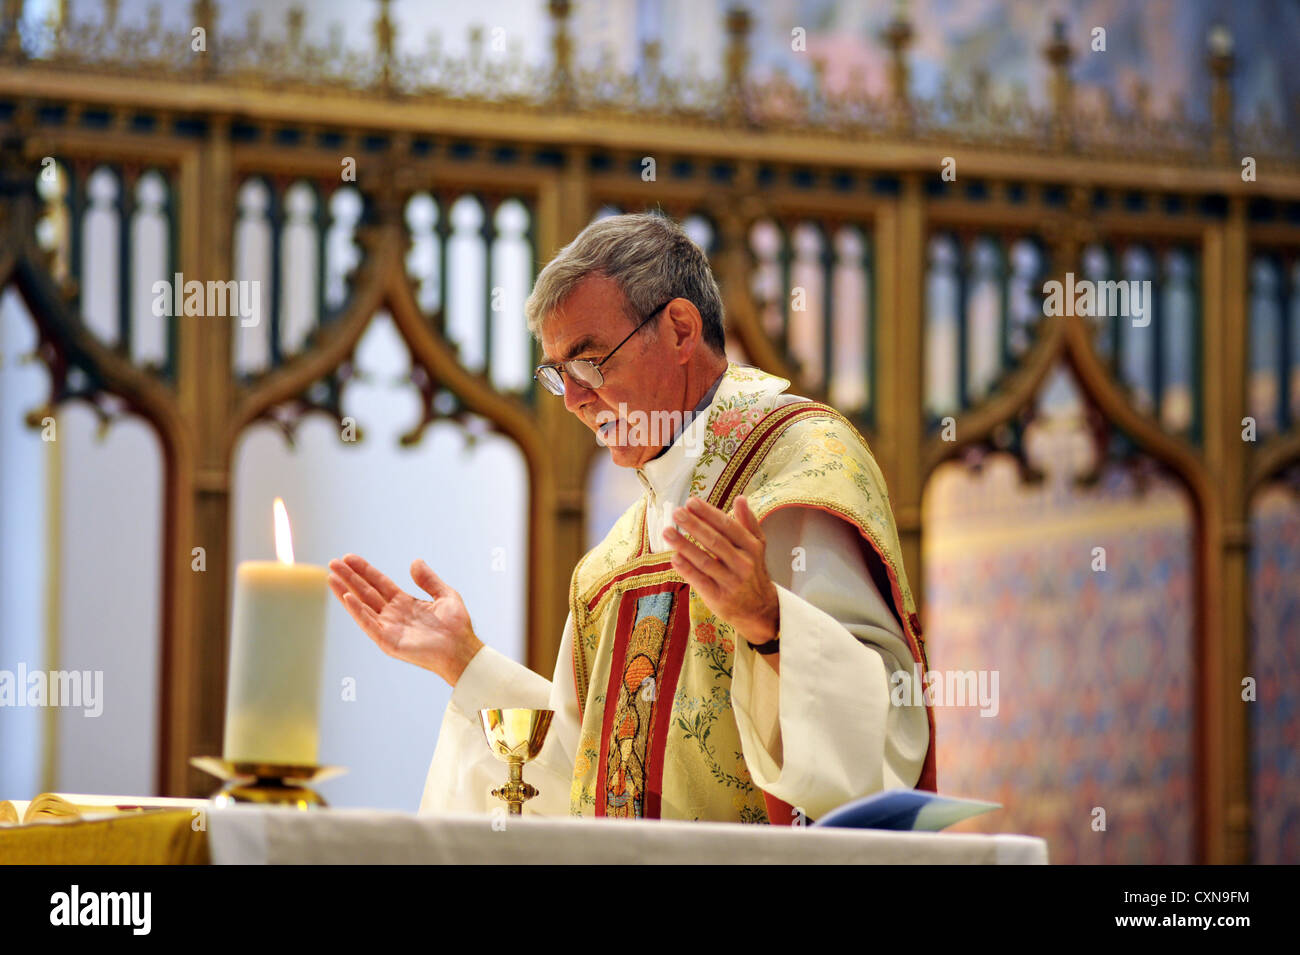 Catholic Priest at a wedding mass, Lancashire UK - Stock Image